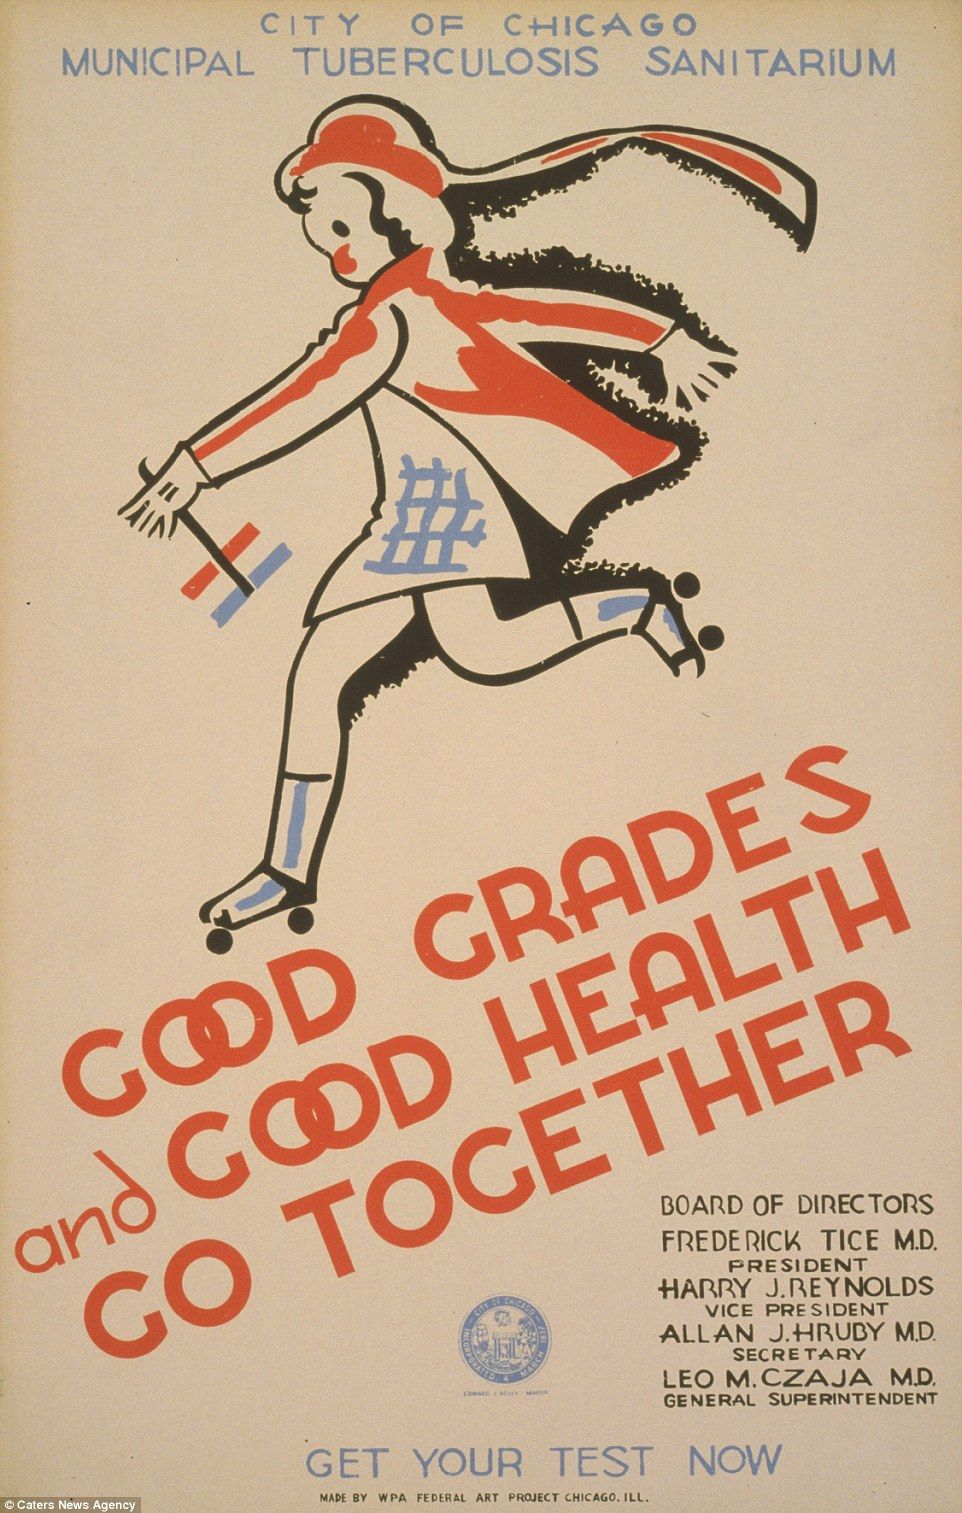 Vintage public health posters show past attitudes towards